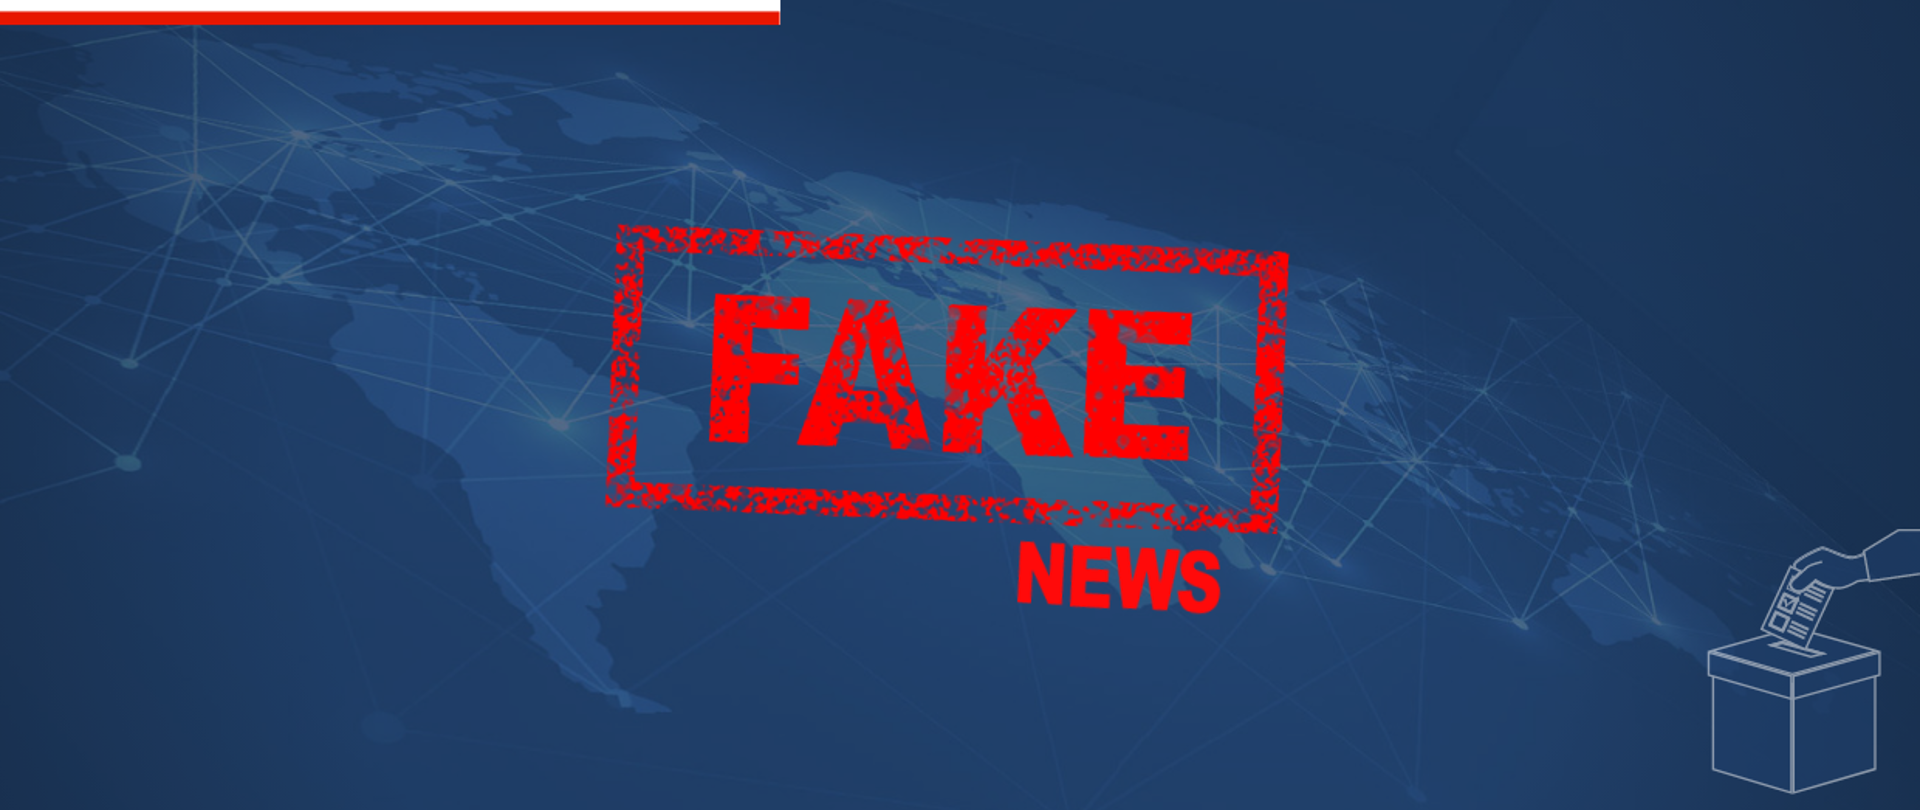 Komunikat - Fake News